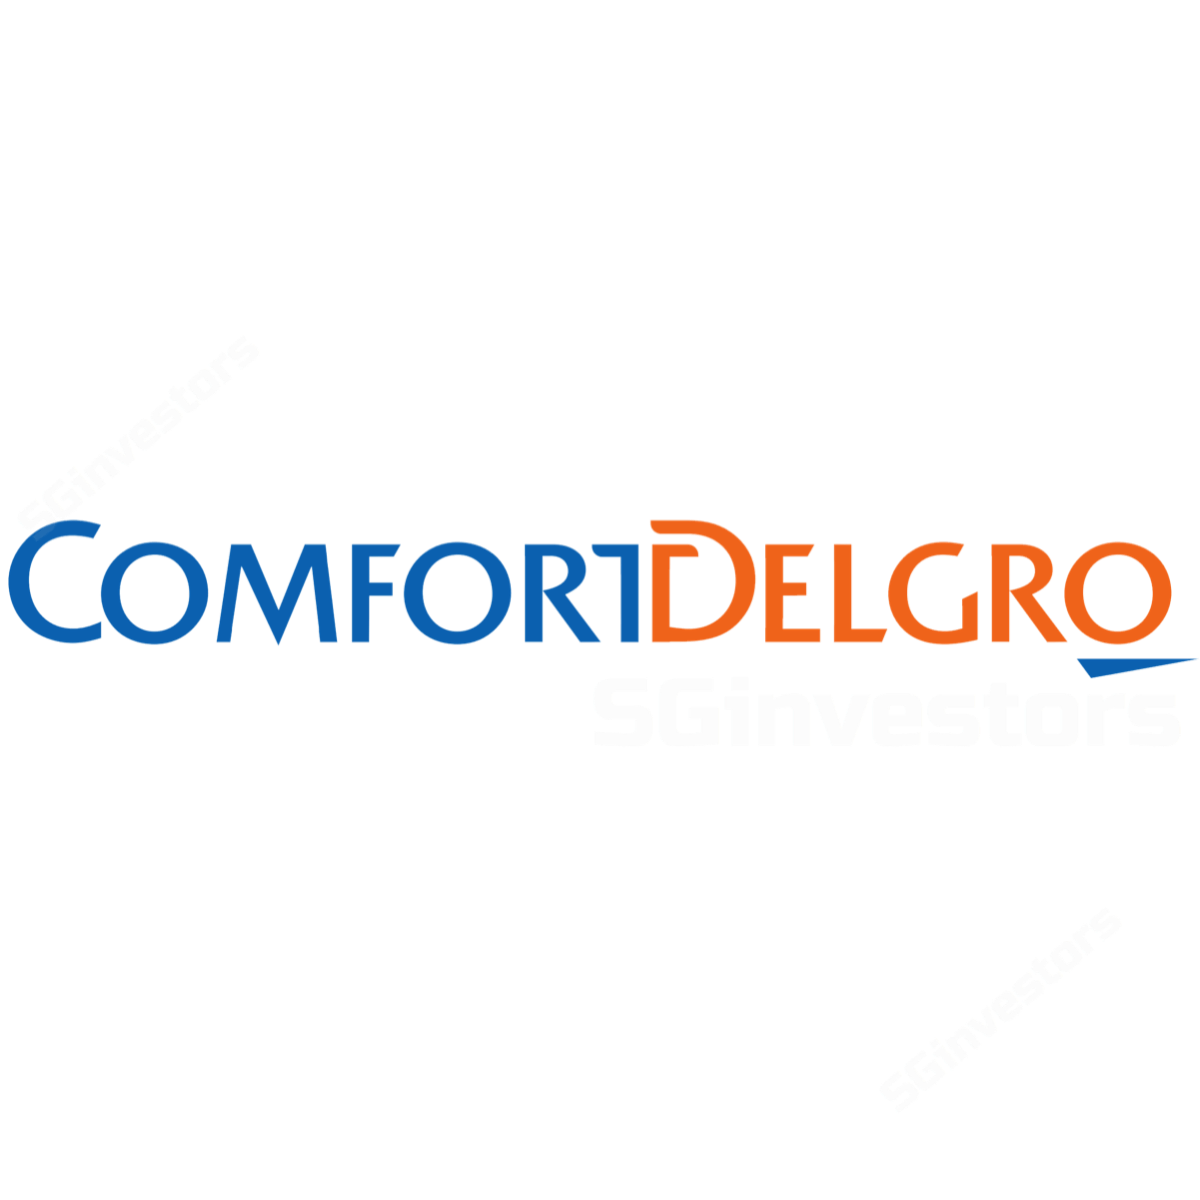 ComfortDelgro - DBS Vickers 2017-05-15: Lower Growth Trajectory